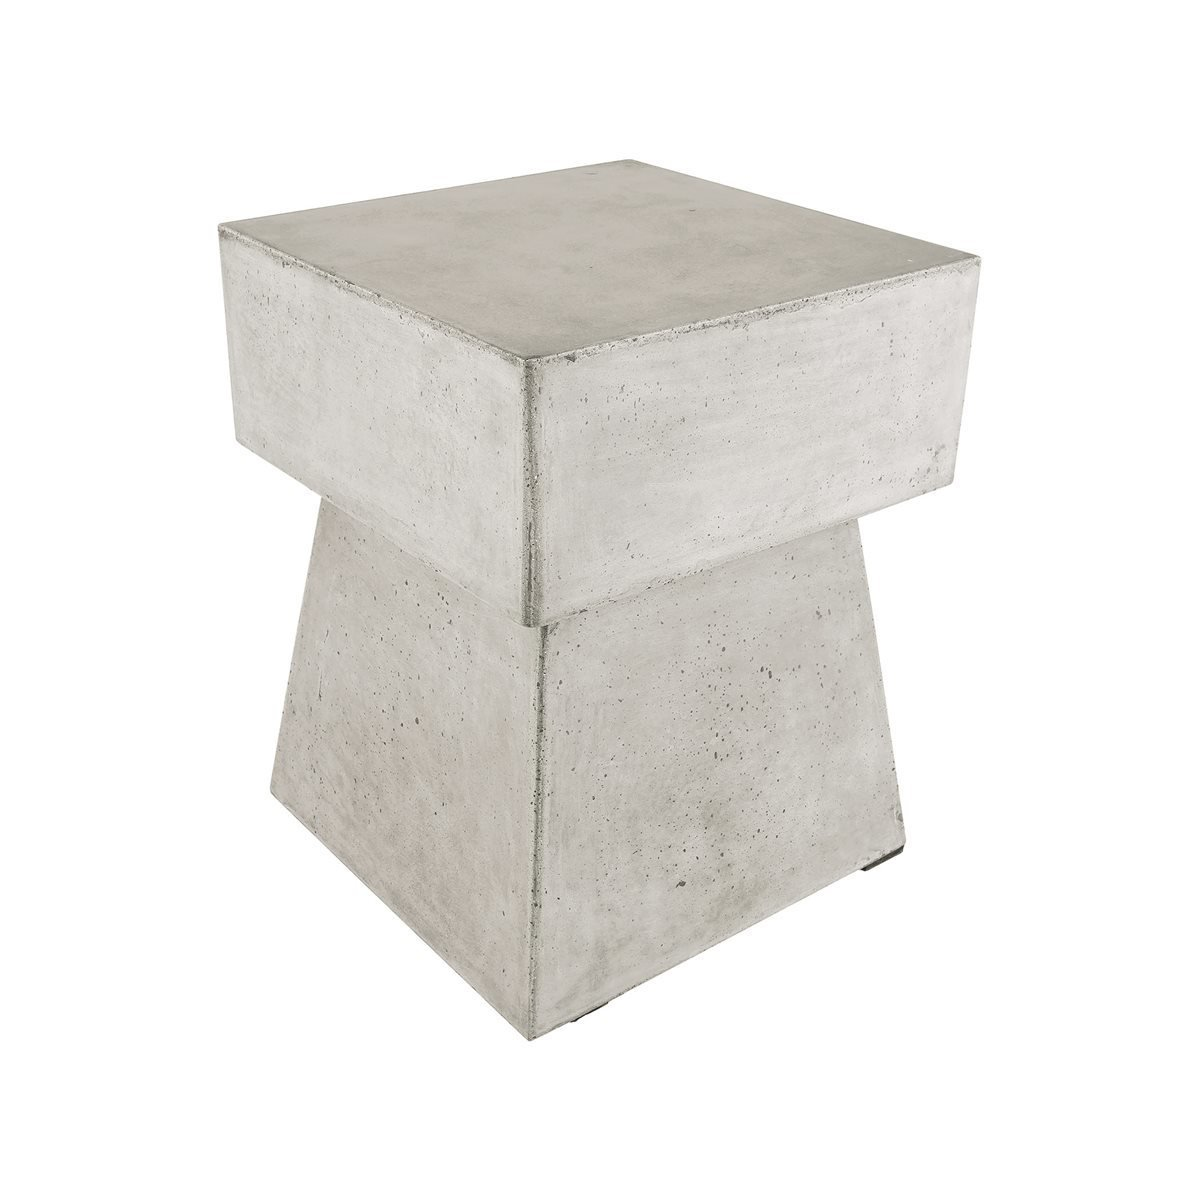 Mushroom Stool in Polished Concrete